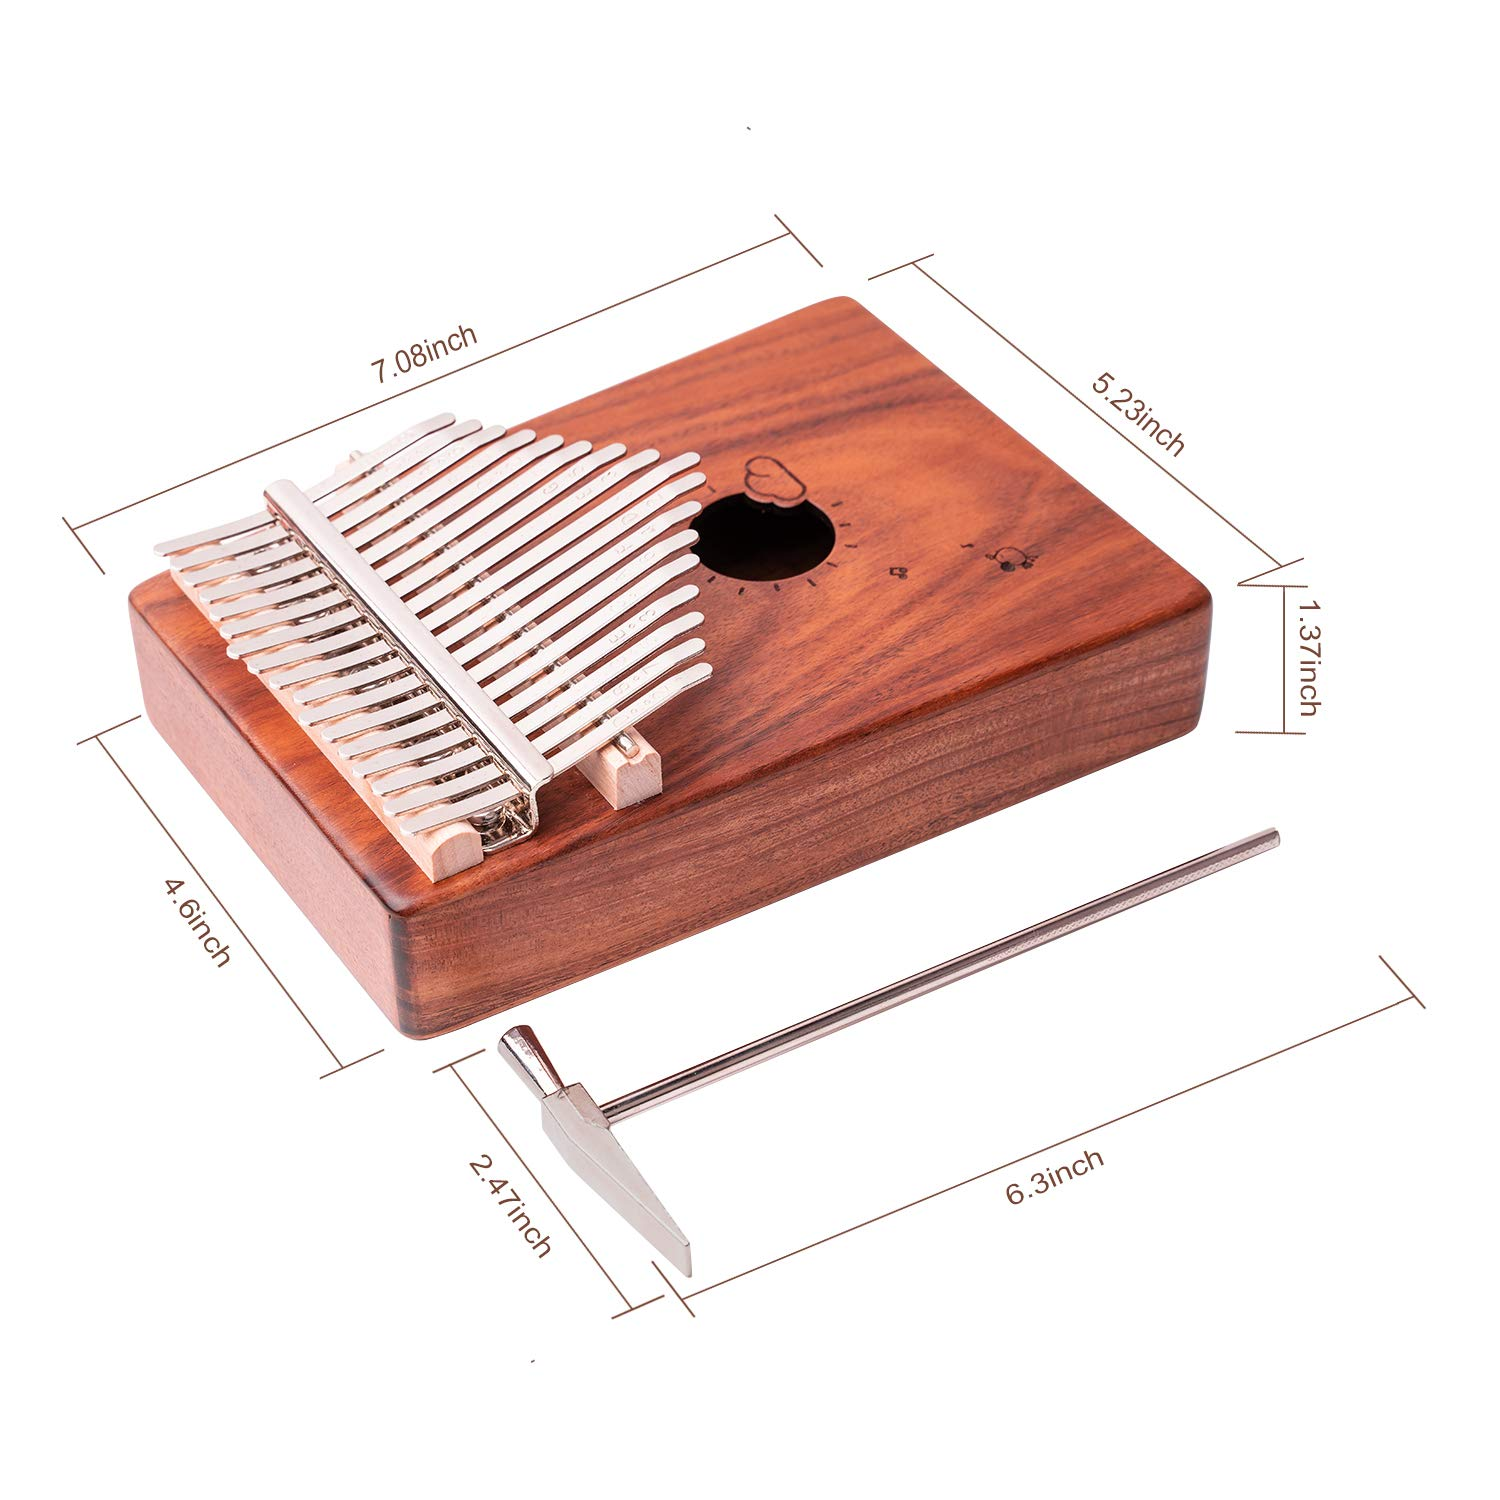 Kalimba 17 Keys Thumb Piano Solid Wood Finger Piano Musical Instrument with Study Instruction,Tuning Hammer,Gift for Kids Adult Beginners Professional without any musical basis(Dark Brown) by Tripolar (Image #7)